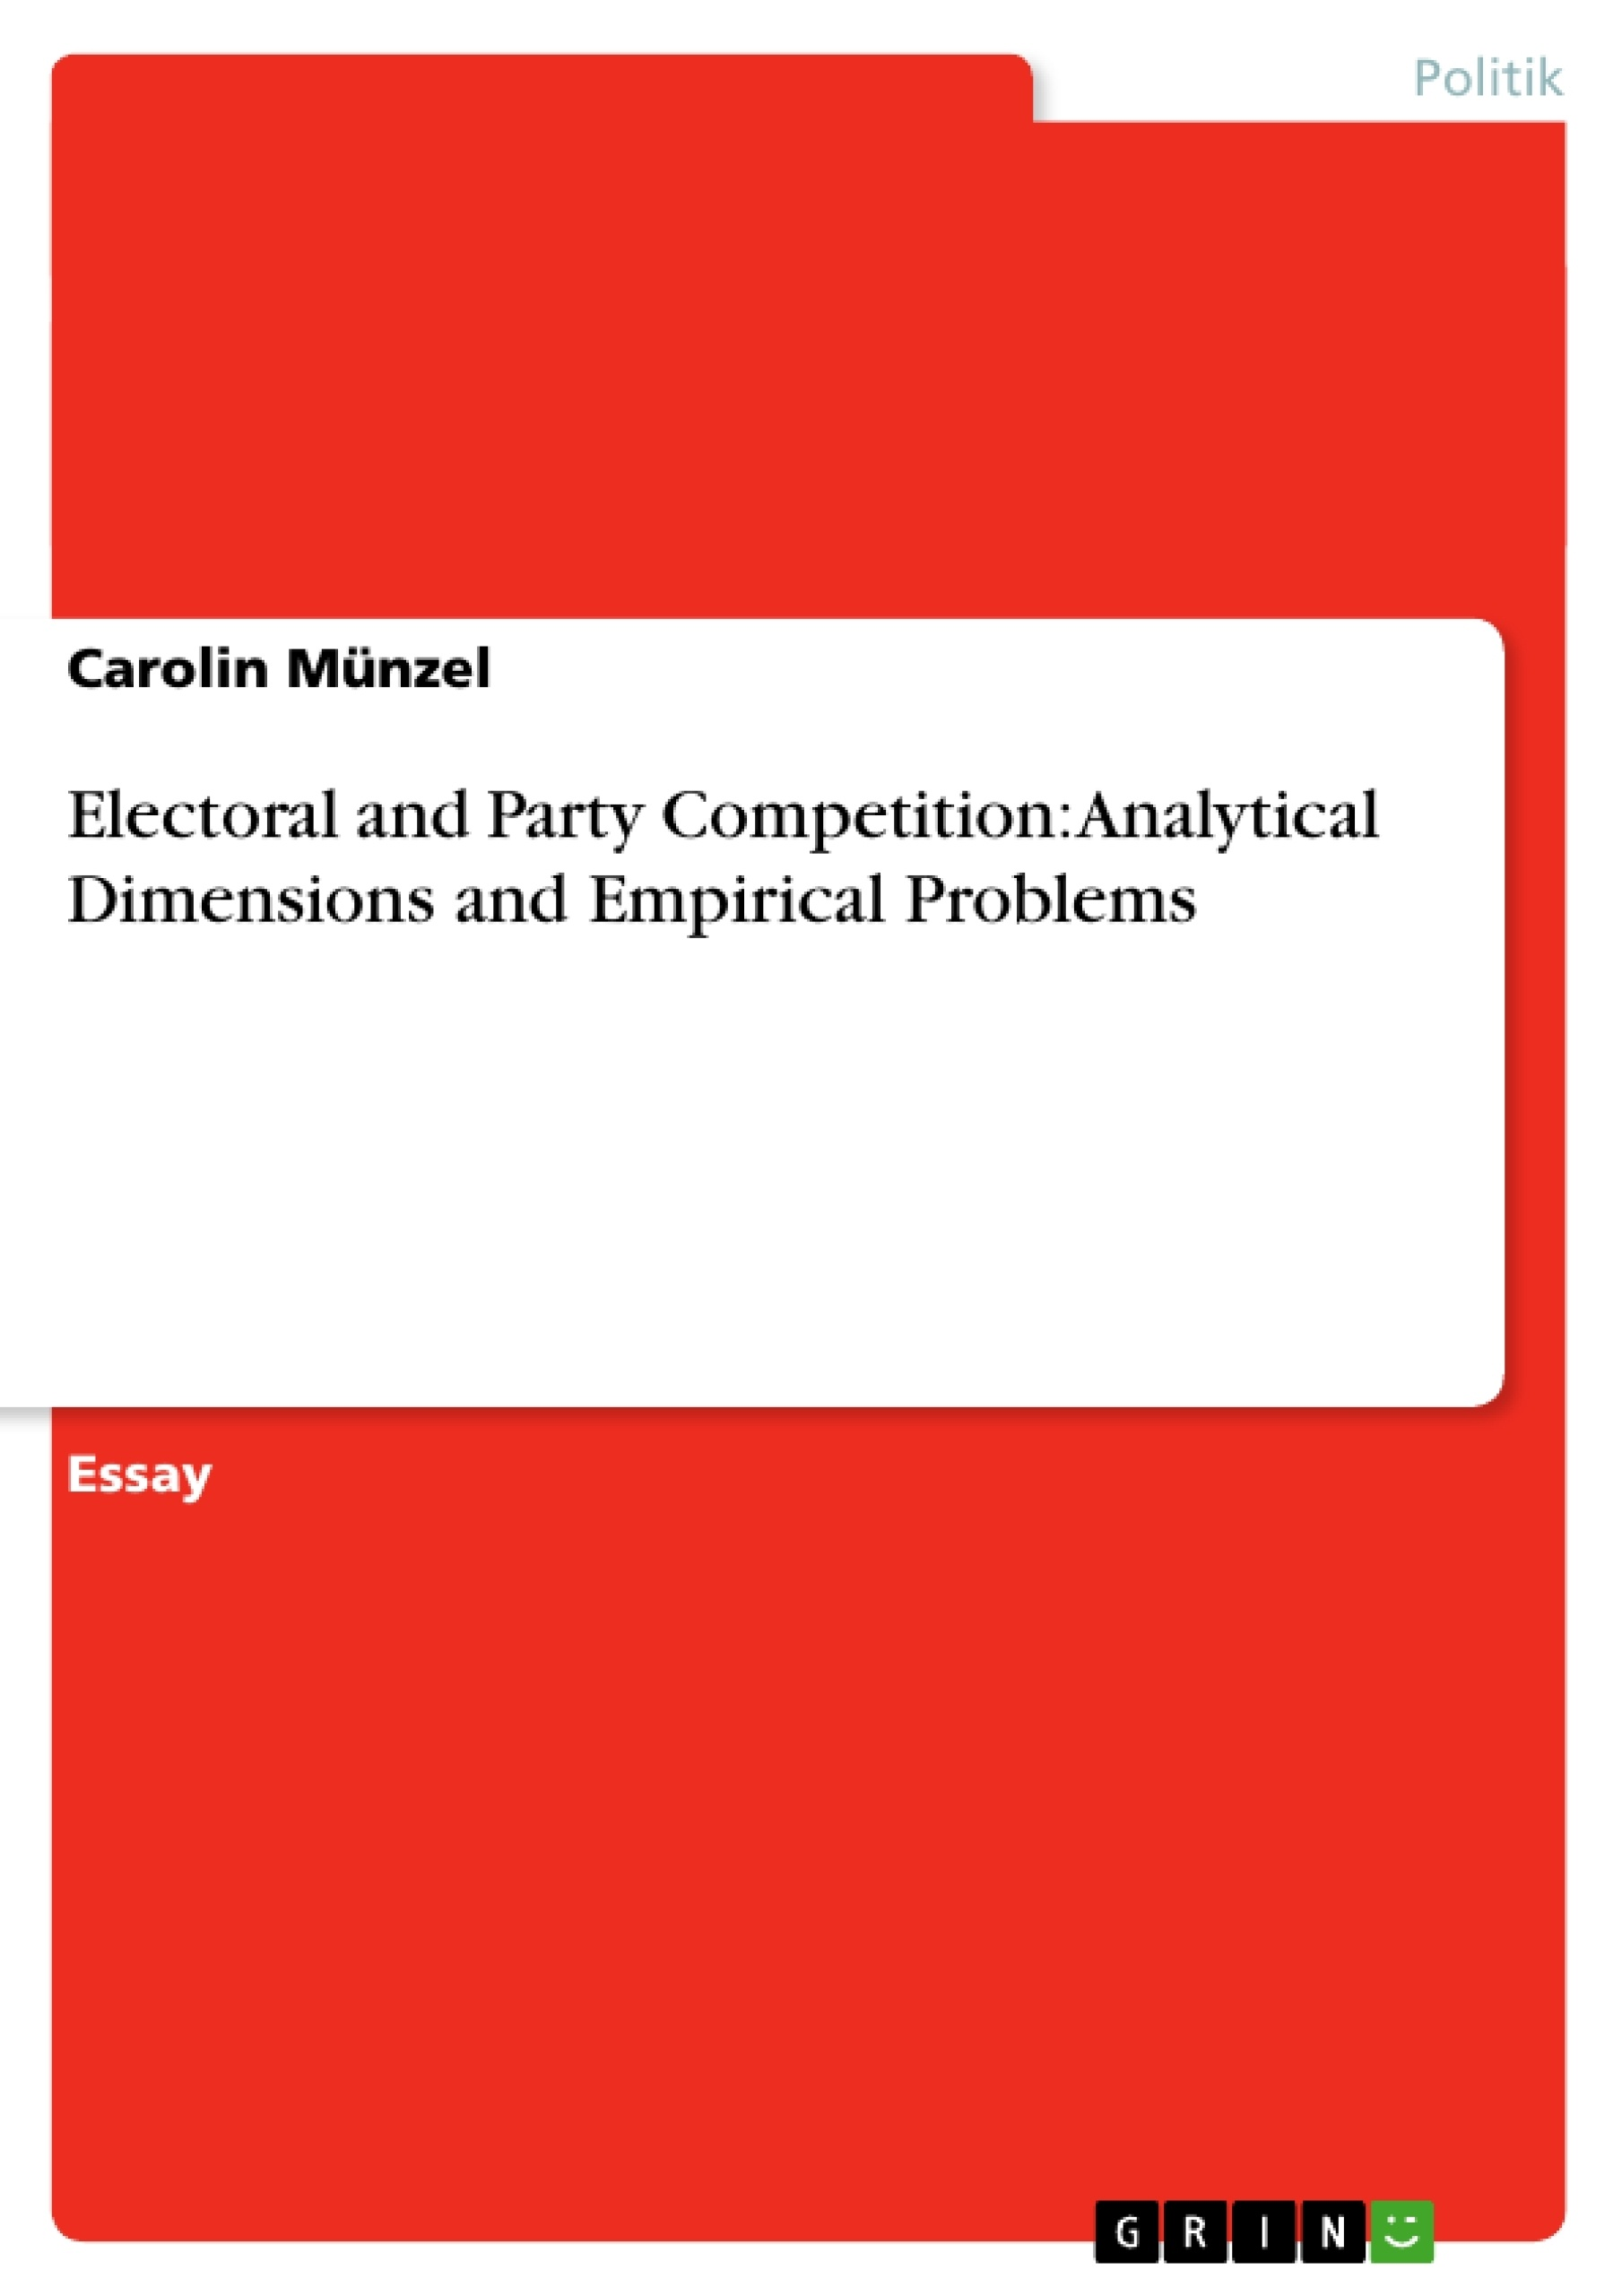 Titel: Electoral and Party Competition: Analytical Dimensions and Empirical Problems